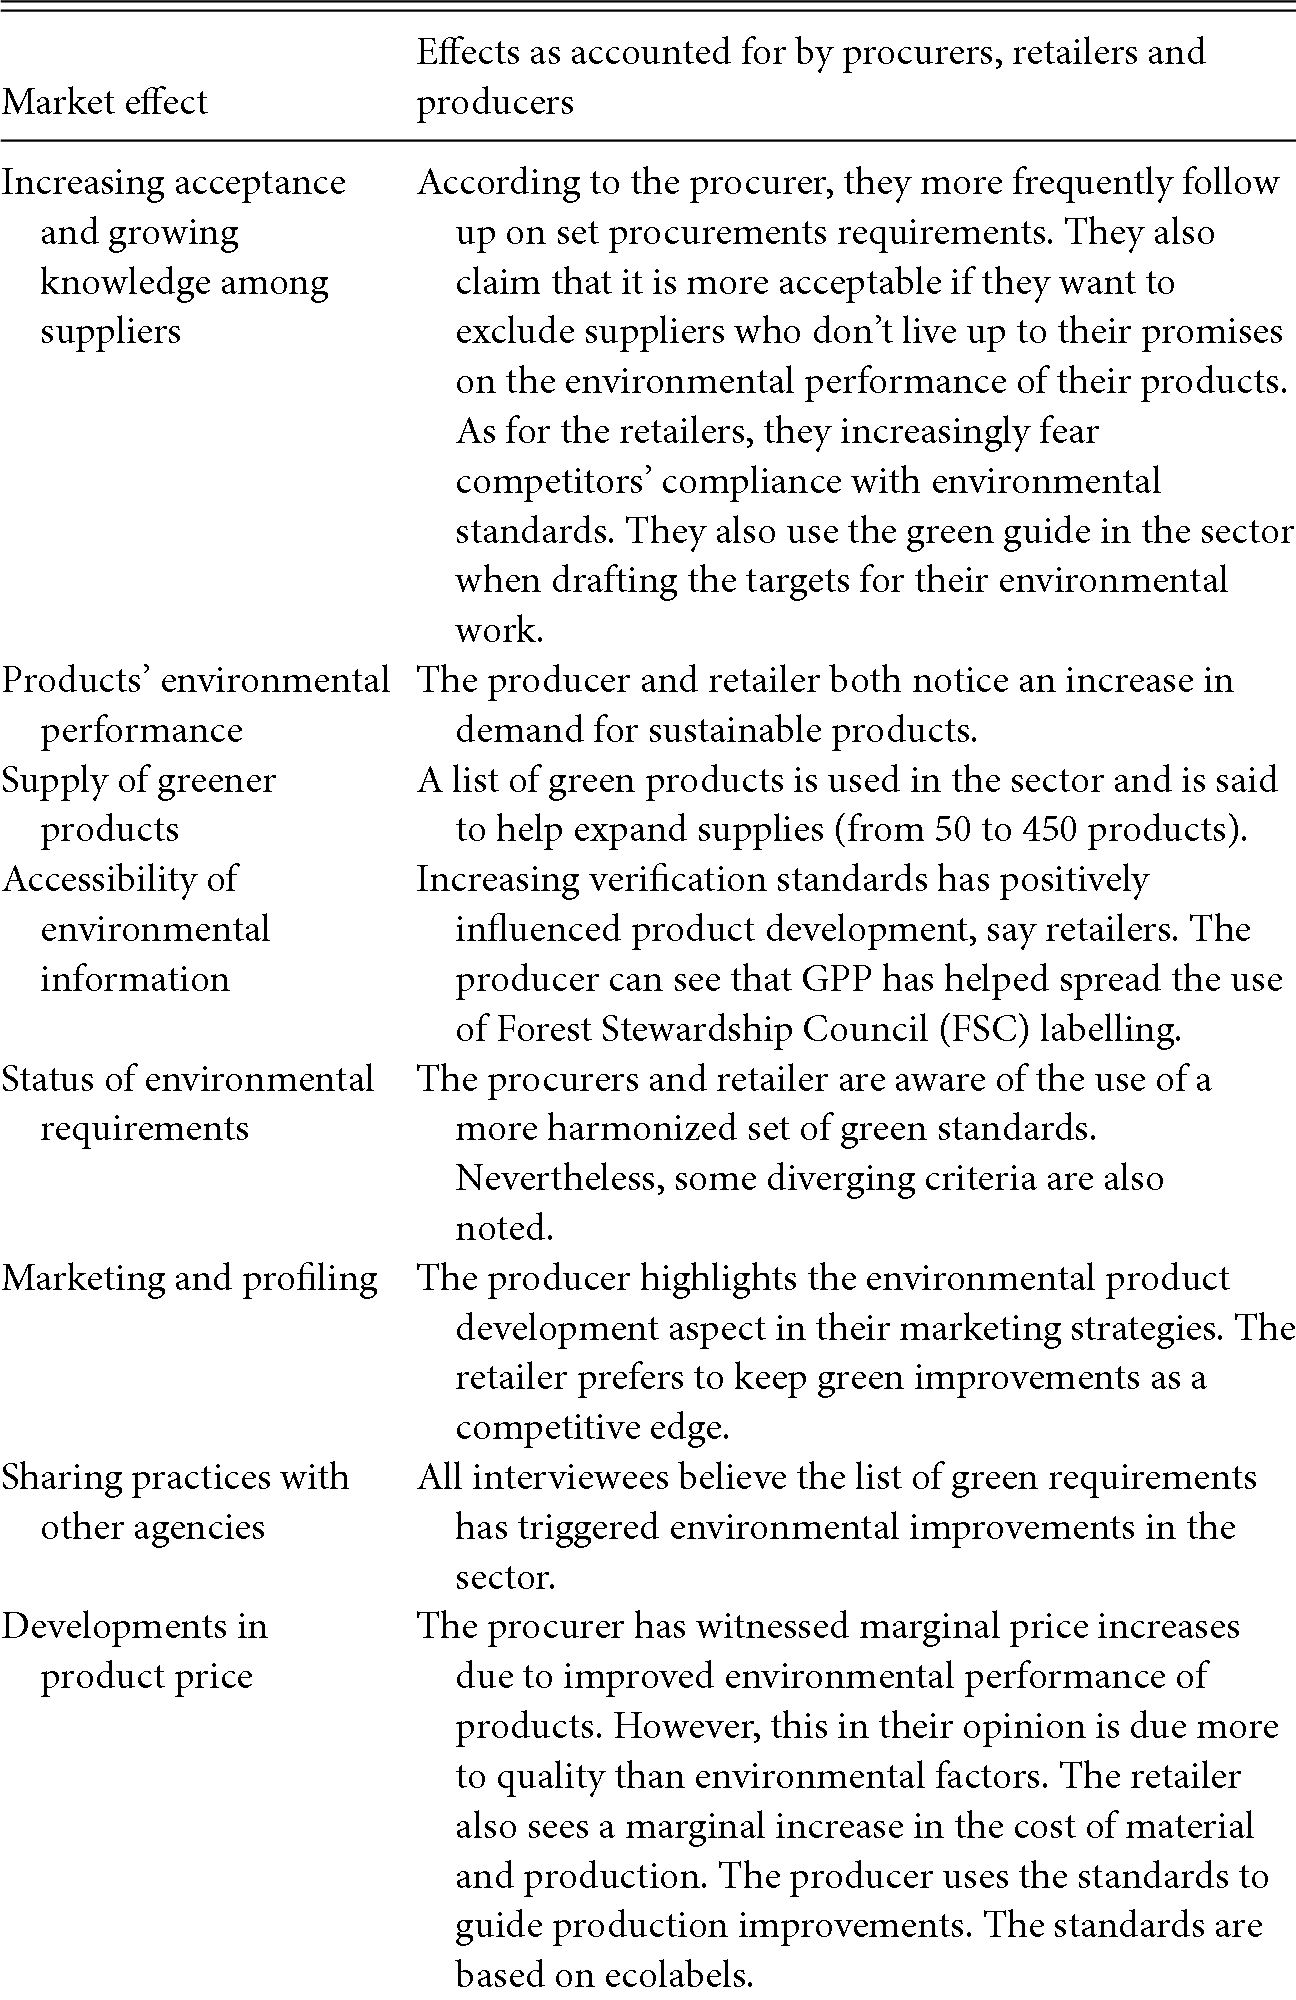 Challenges Related to the Application of European Product